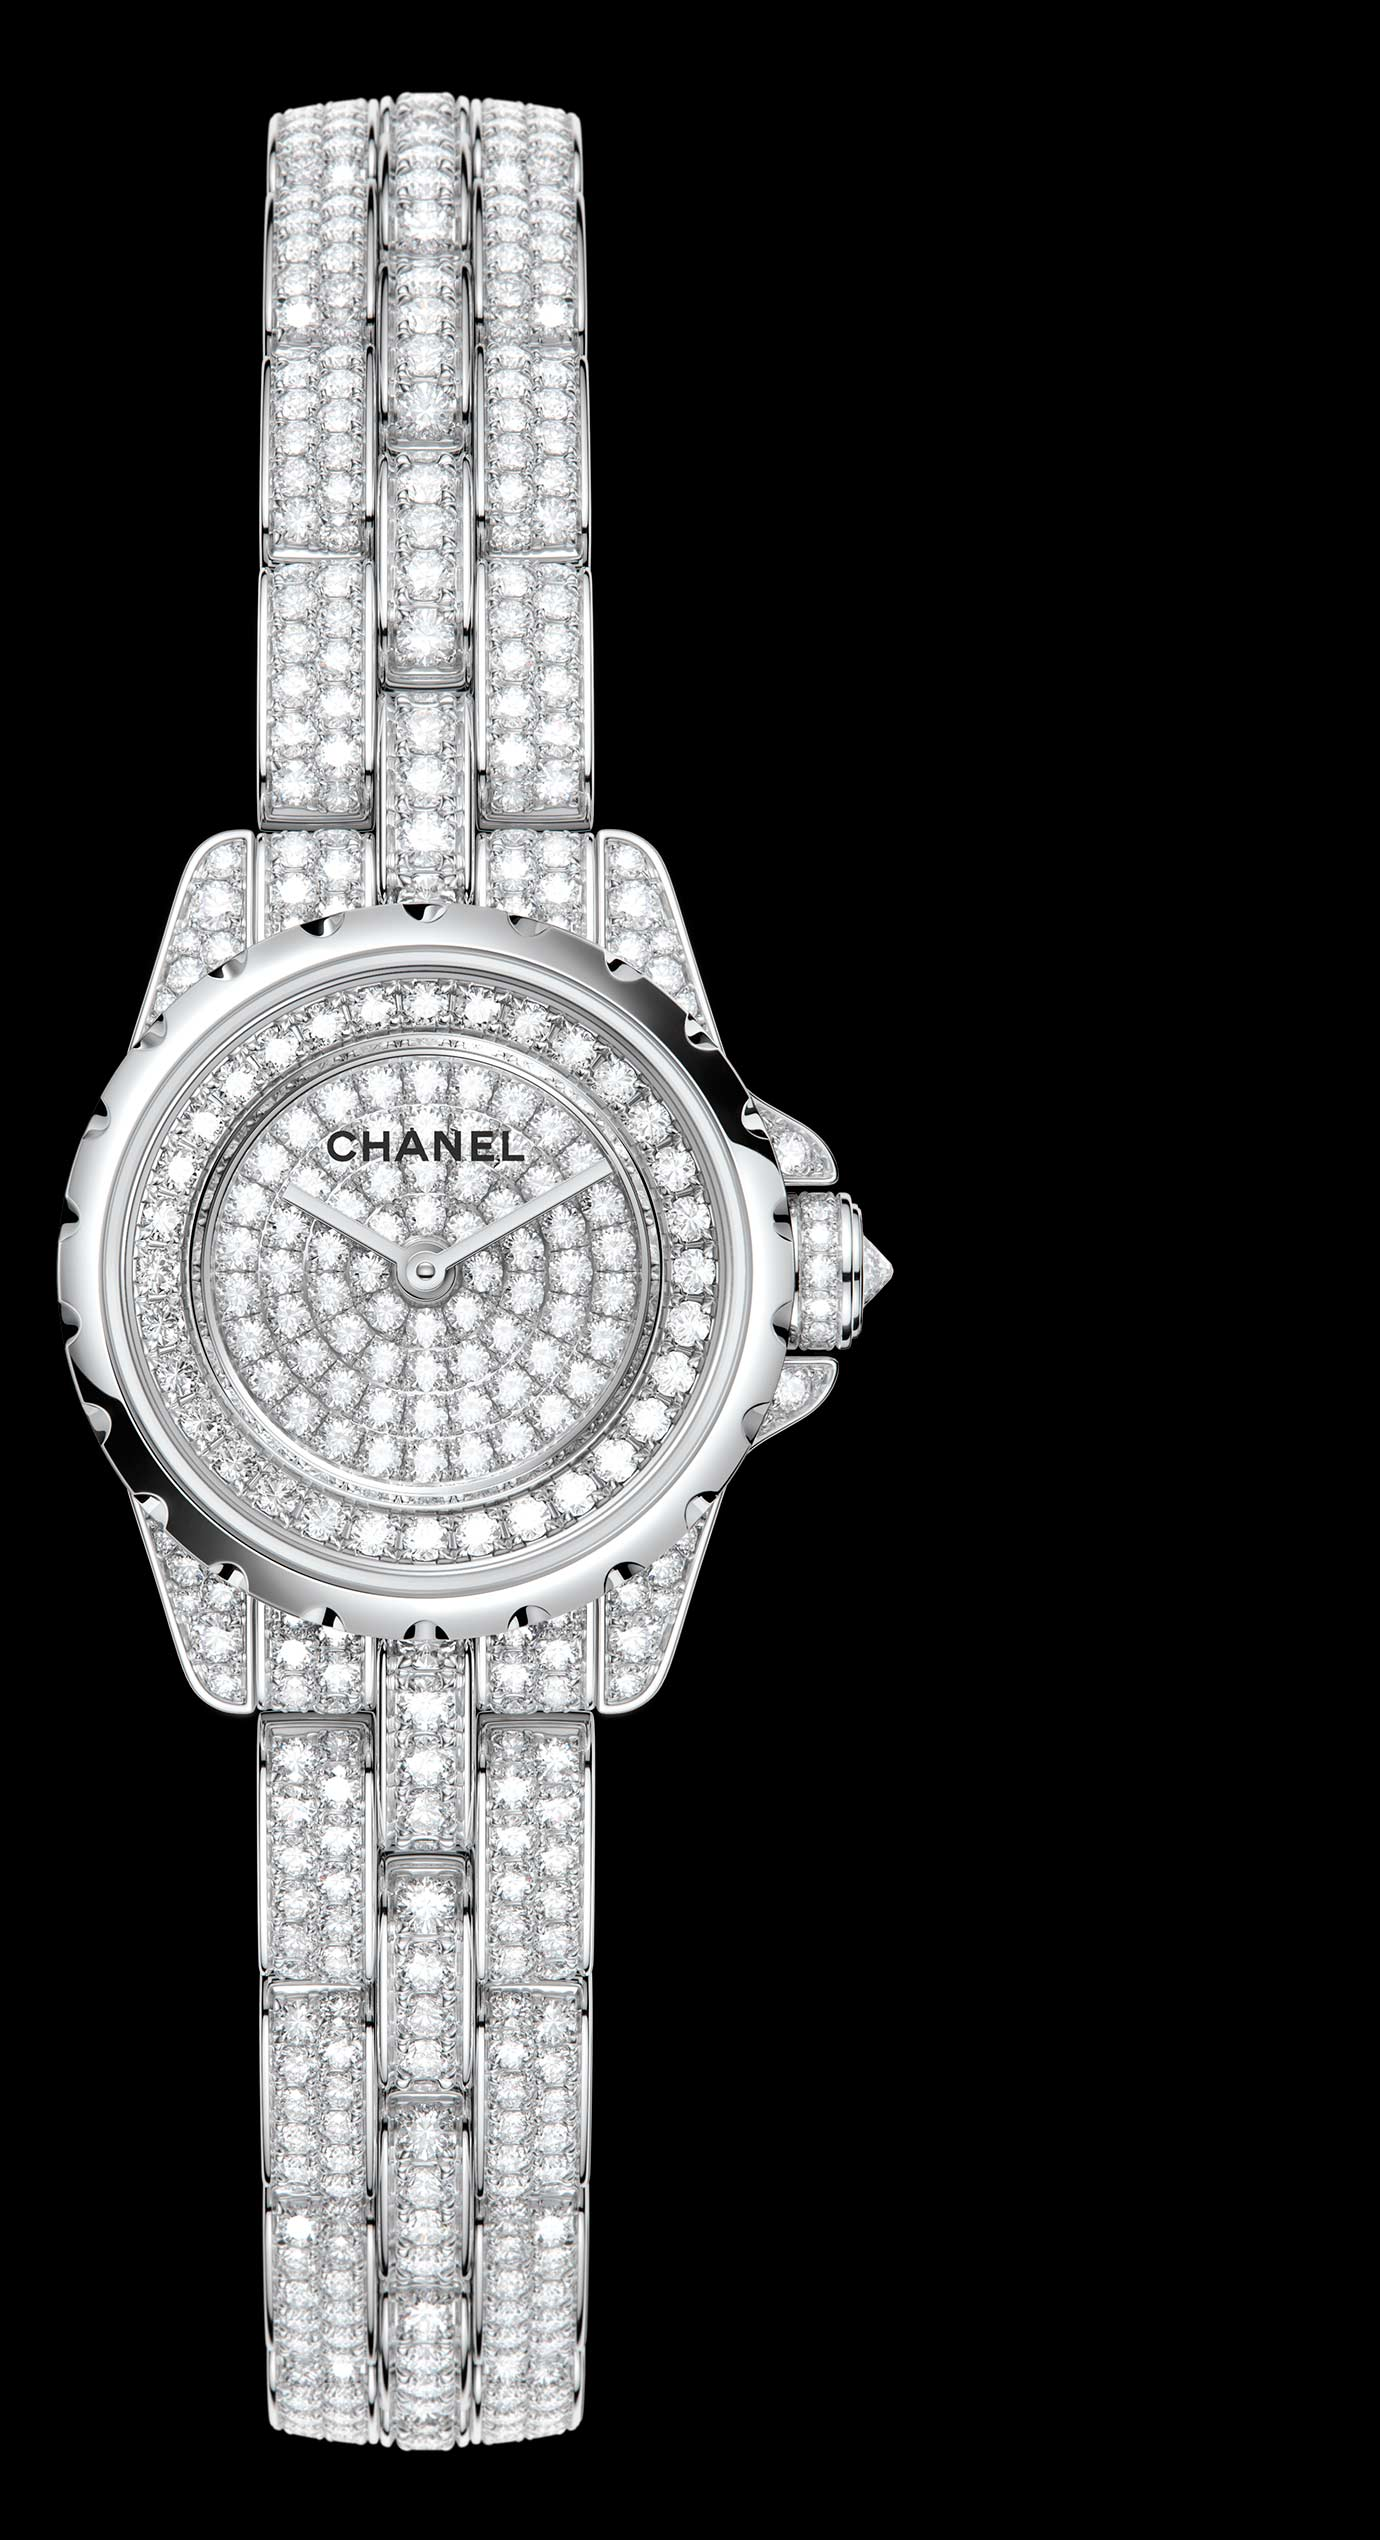 J12 XS High Jewellery in white gold, case, dial, bezel and bracelet set with brilliant cut diamonds. - Enlarged view